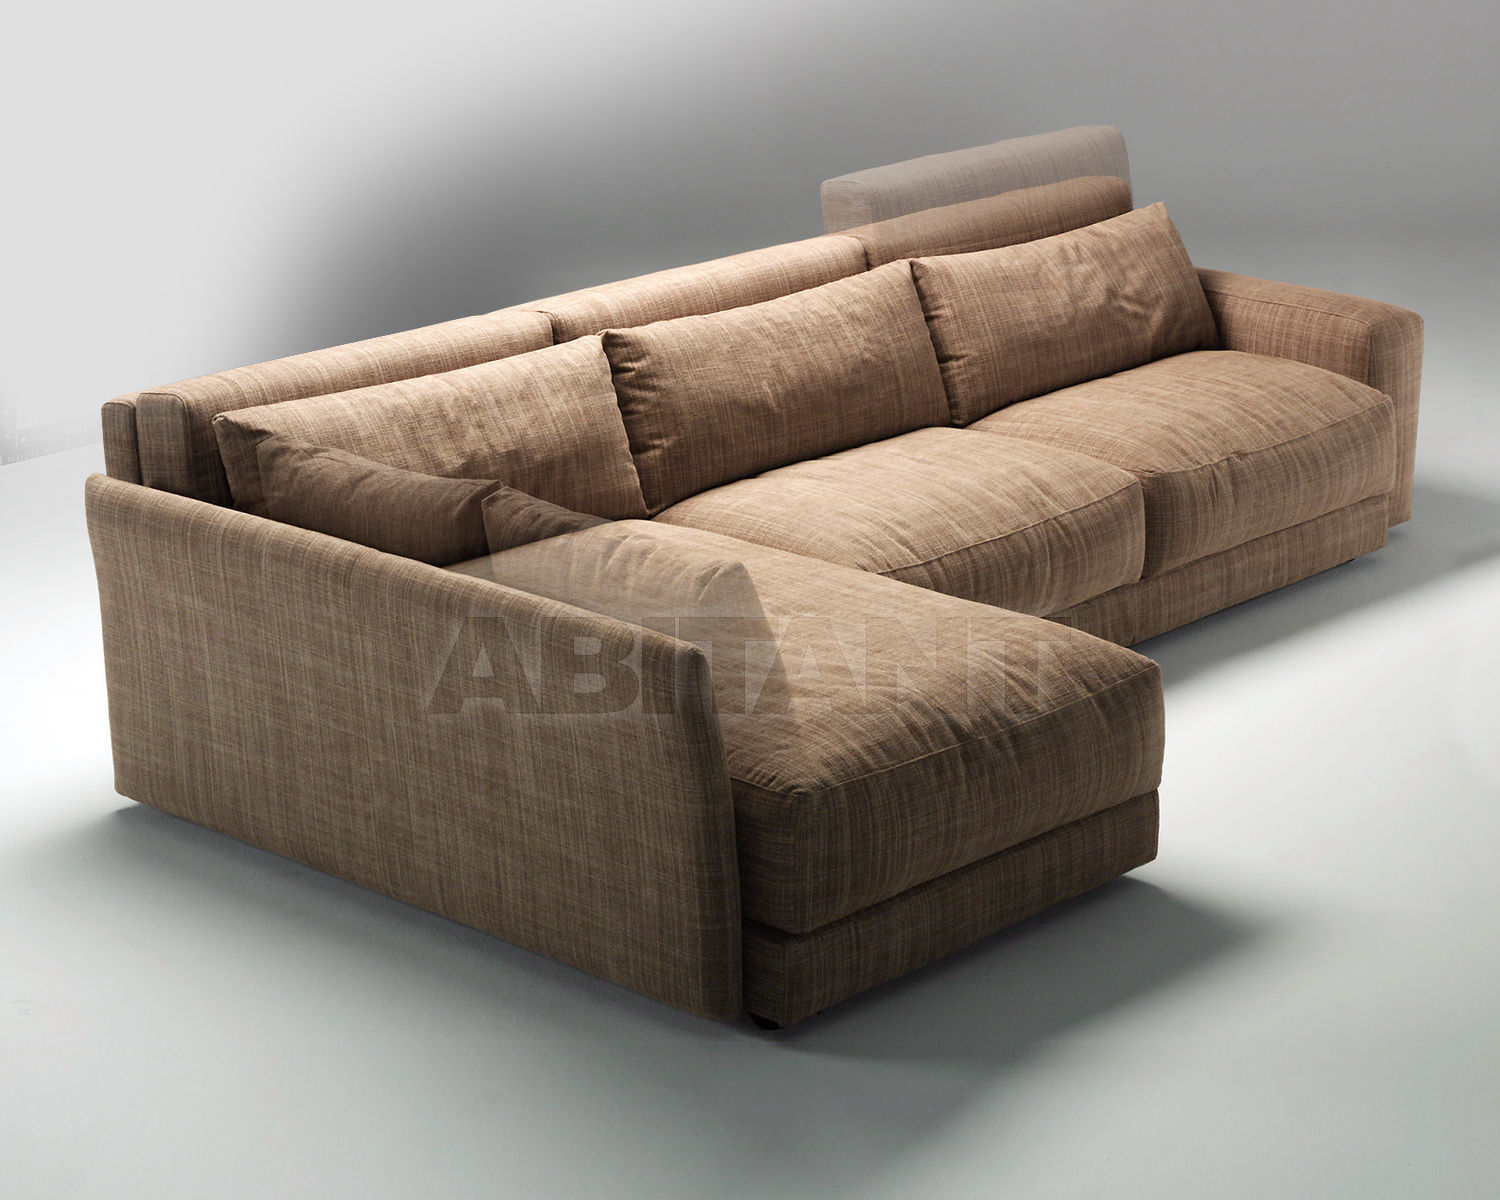 Купить Диван Up! Sancal Diseno, S.L. Sofa 234.141.KU+234.121.U+234.135.D+234.132.D